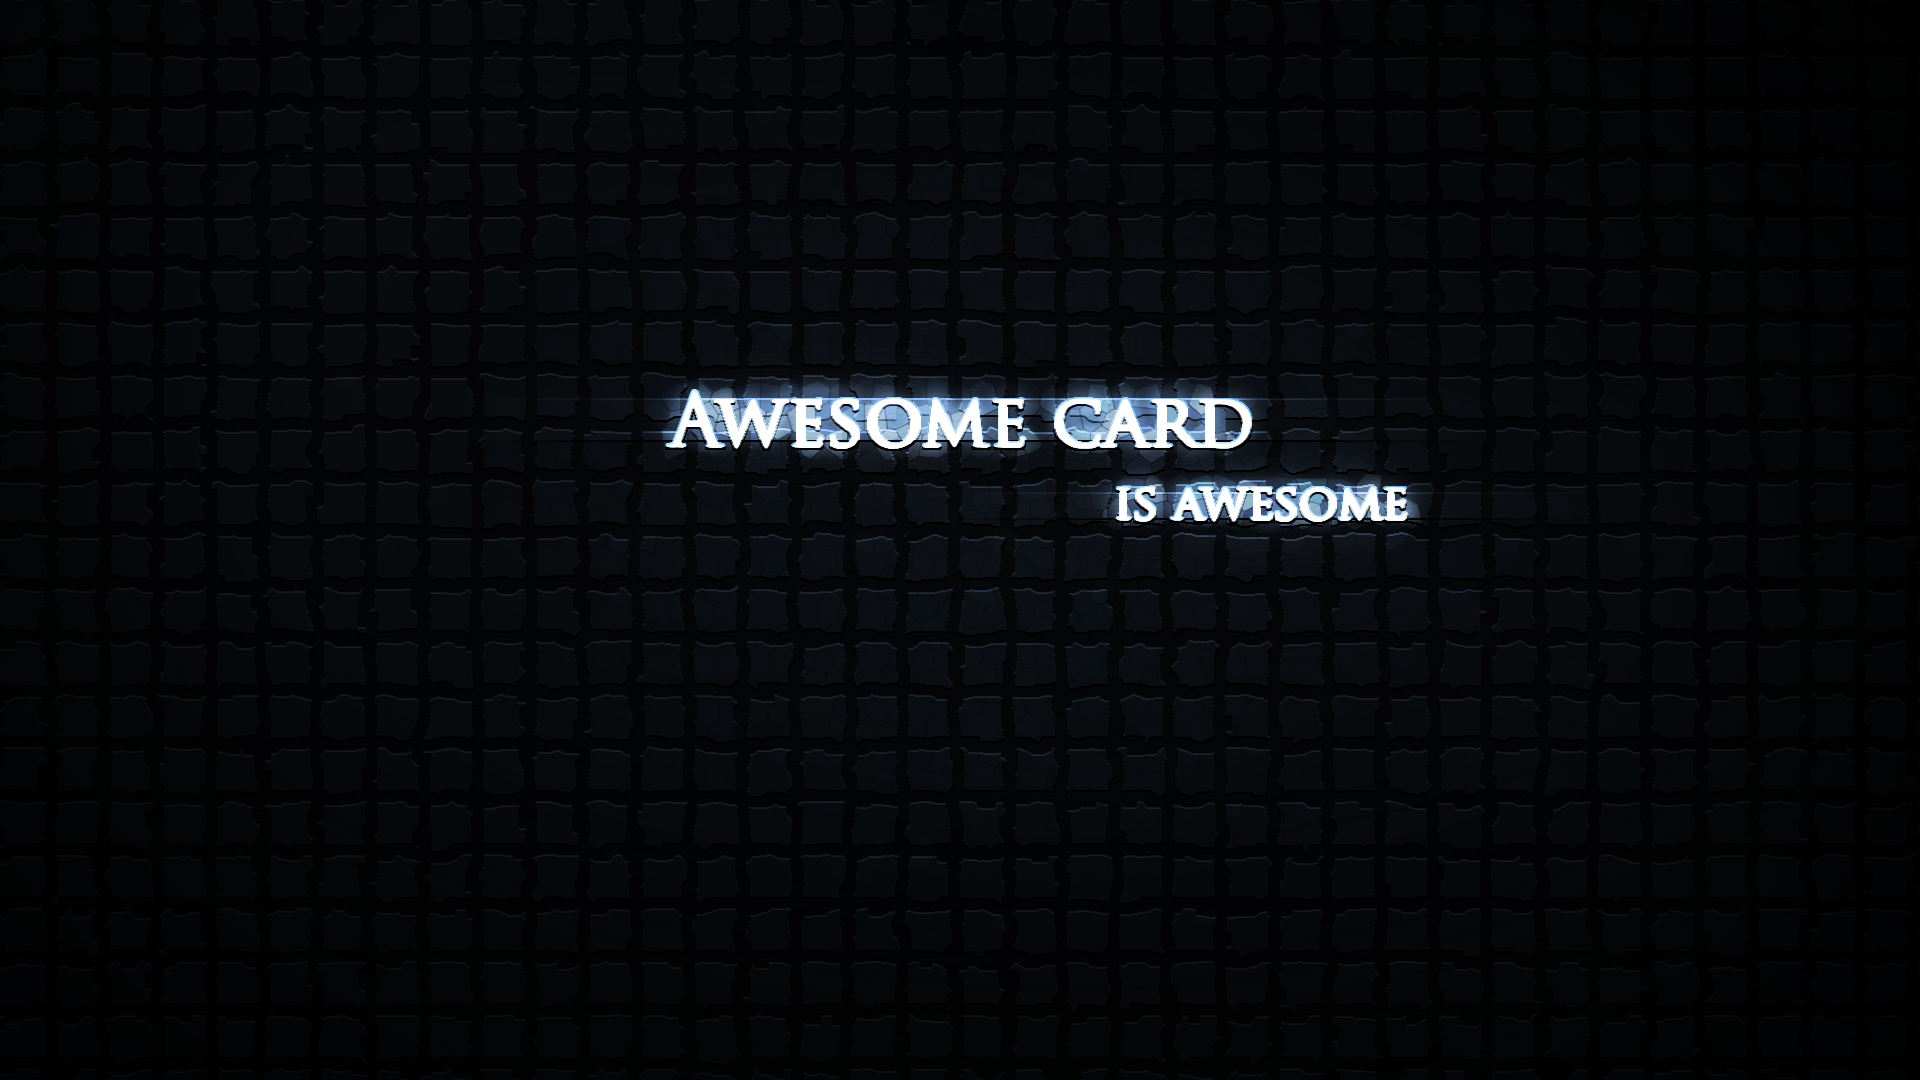 Awesome card is awesome